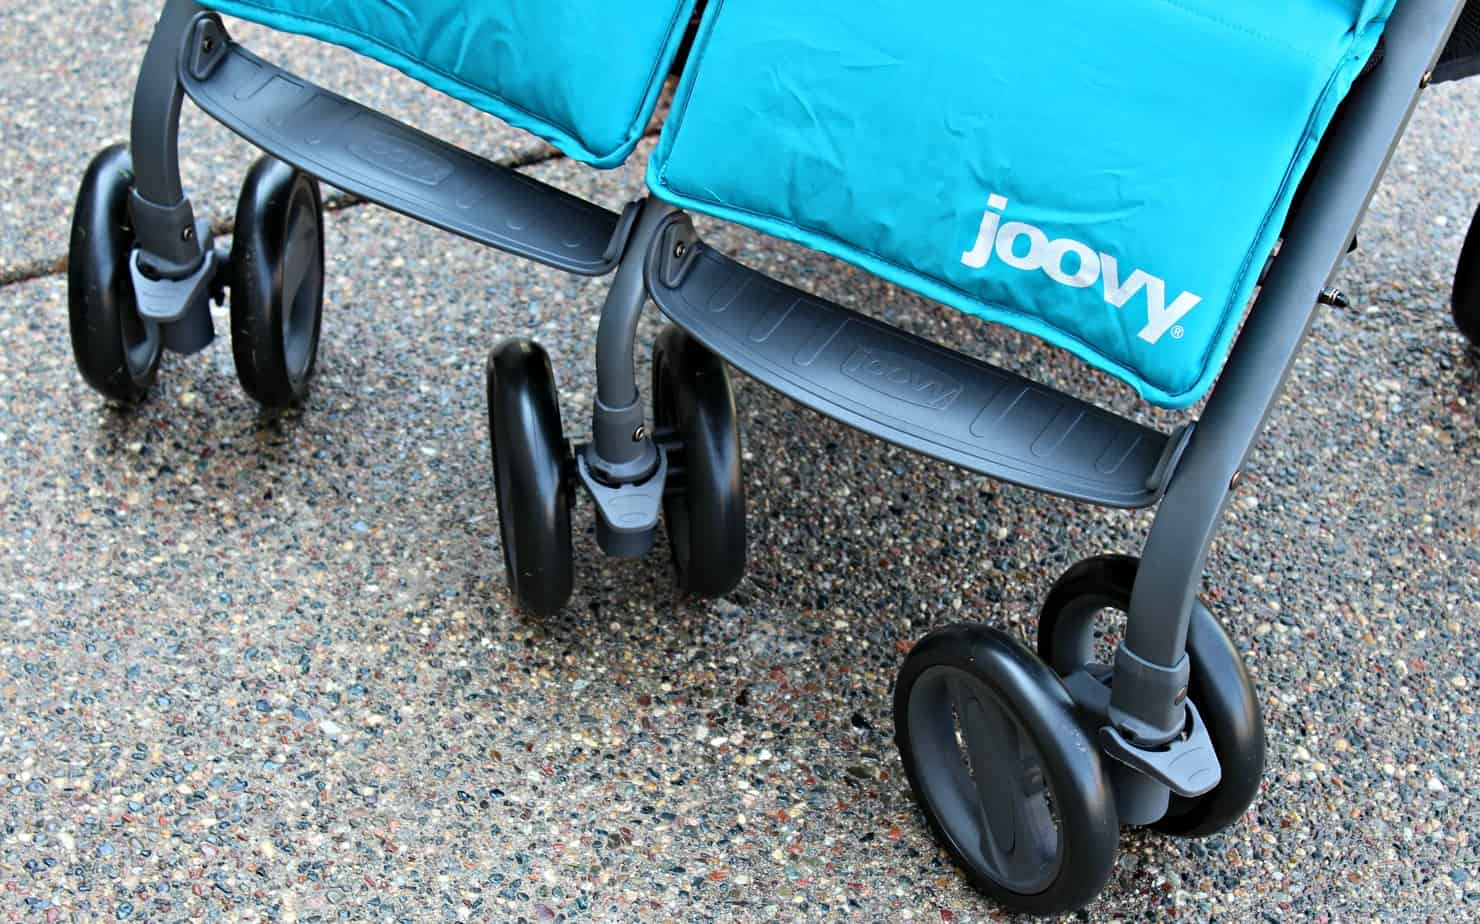 My Full Review Of The Joovy Twingroove Ultralight Double